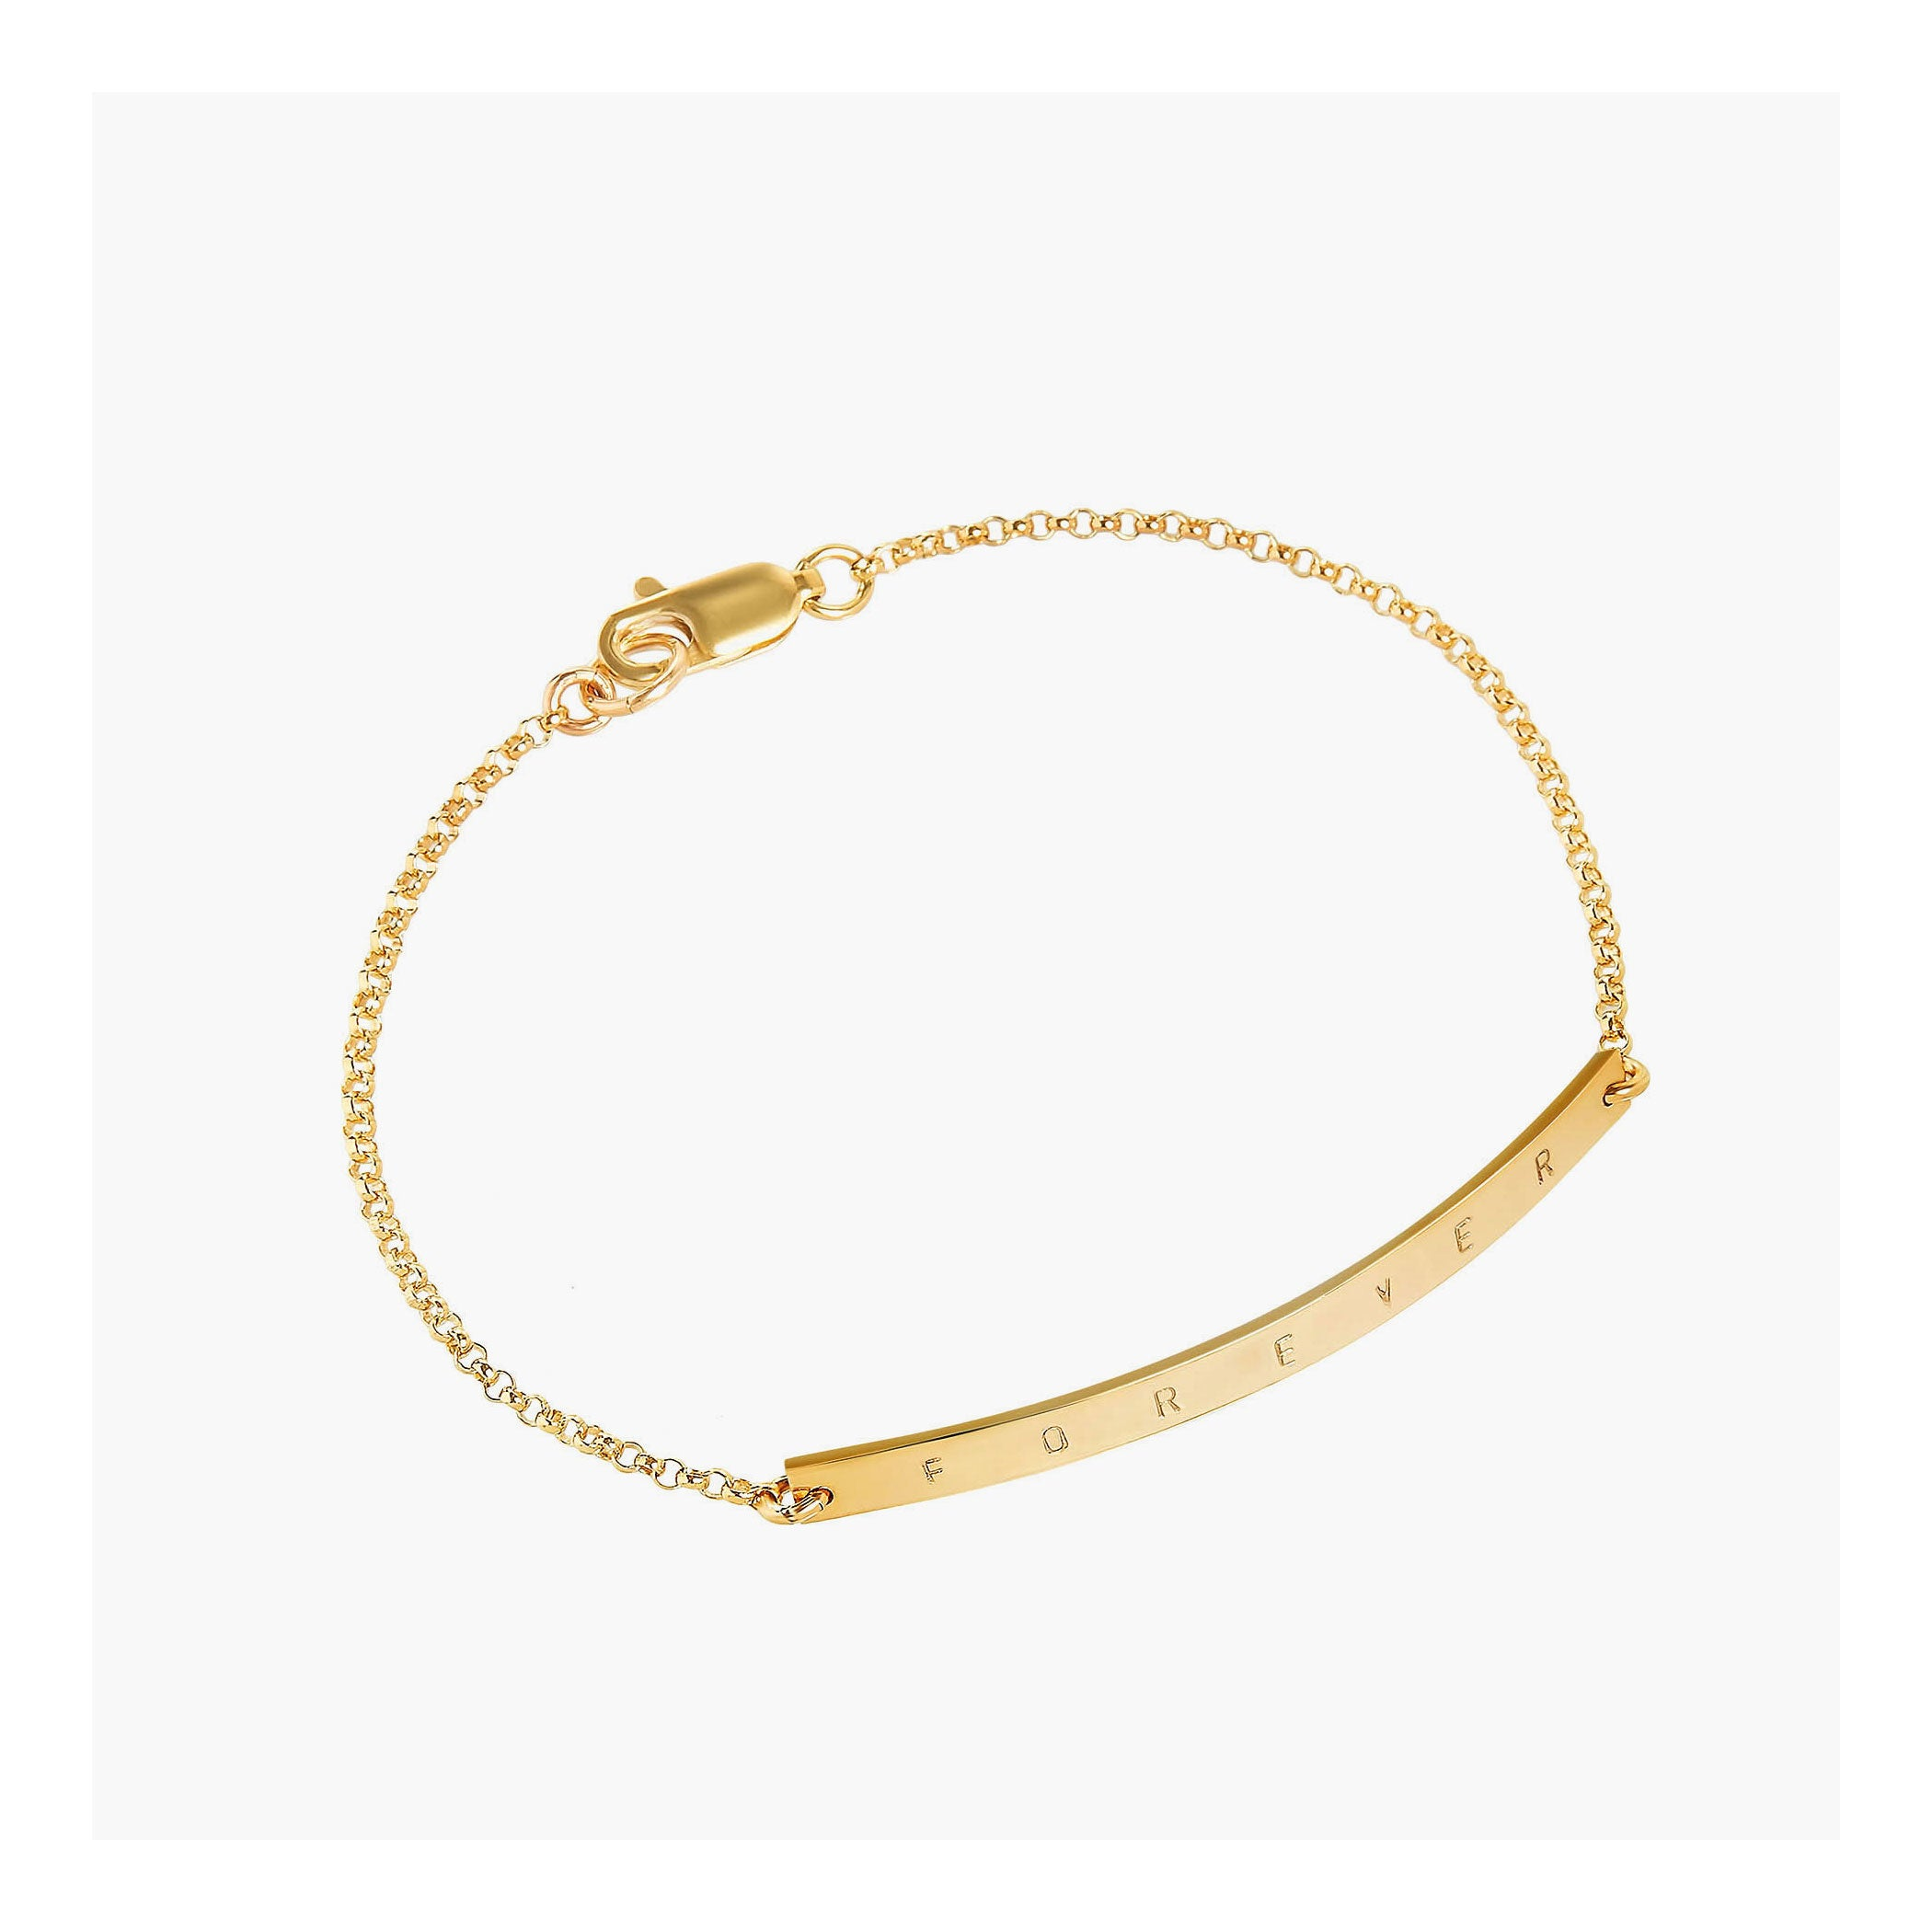 Custom gold bar bracelet